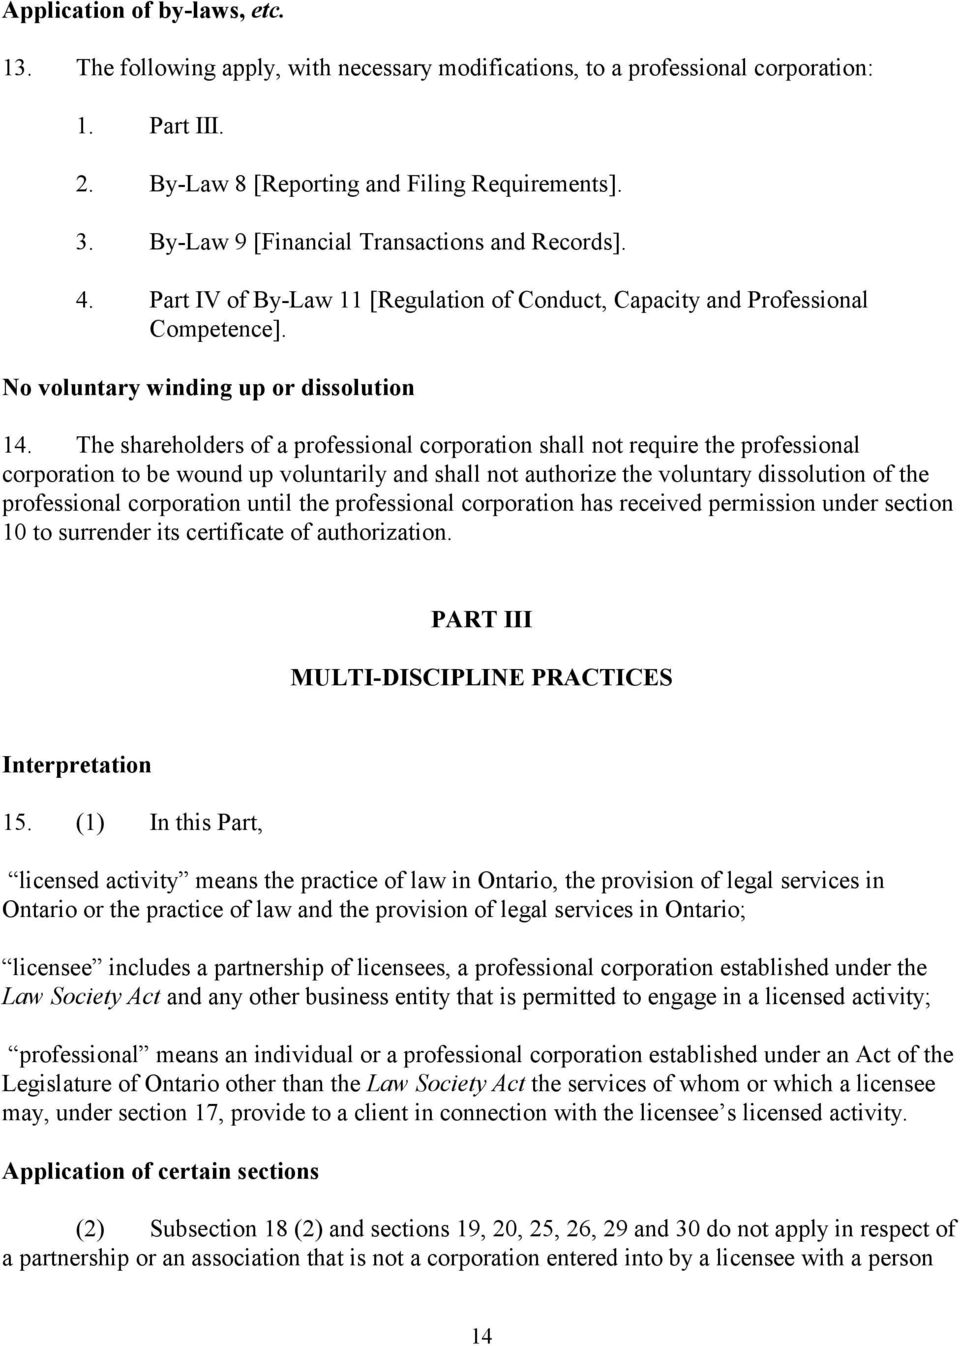 The shareholders of a professional corporation shall not require the professional corporation to be wound up voluntarily and shall not authorize the voluntary dissolution of the professional